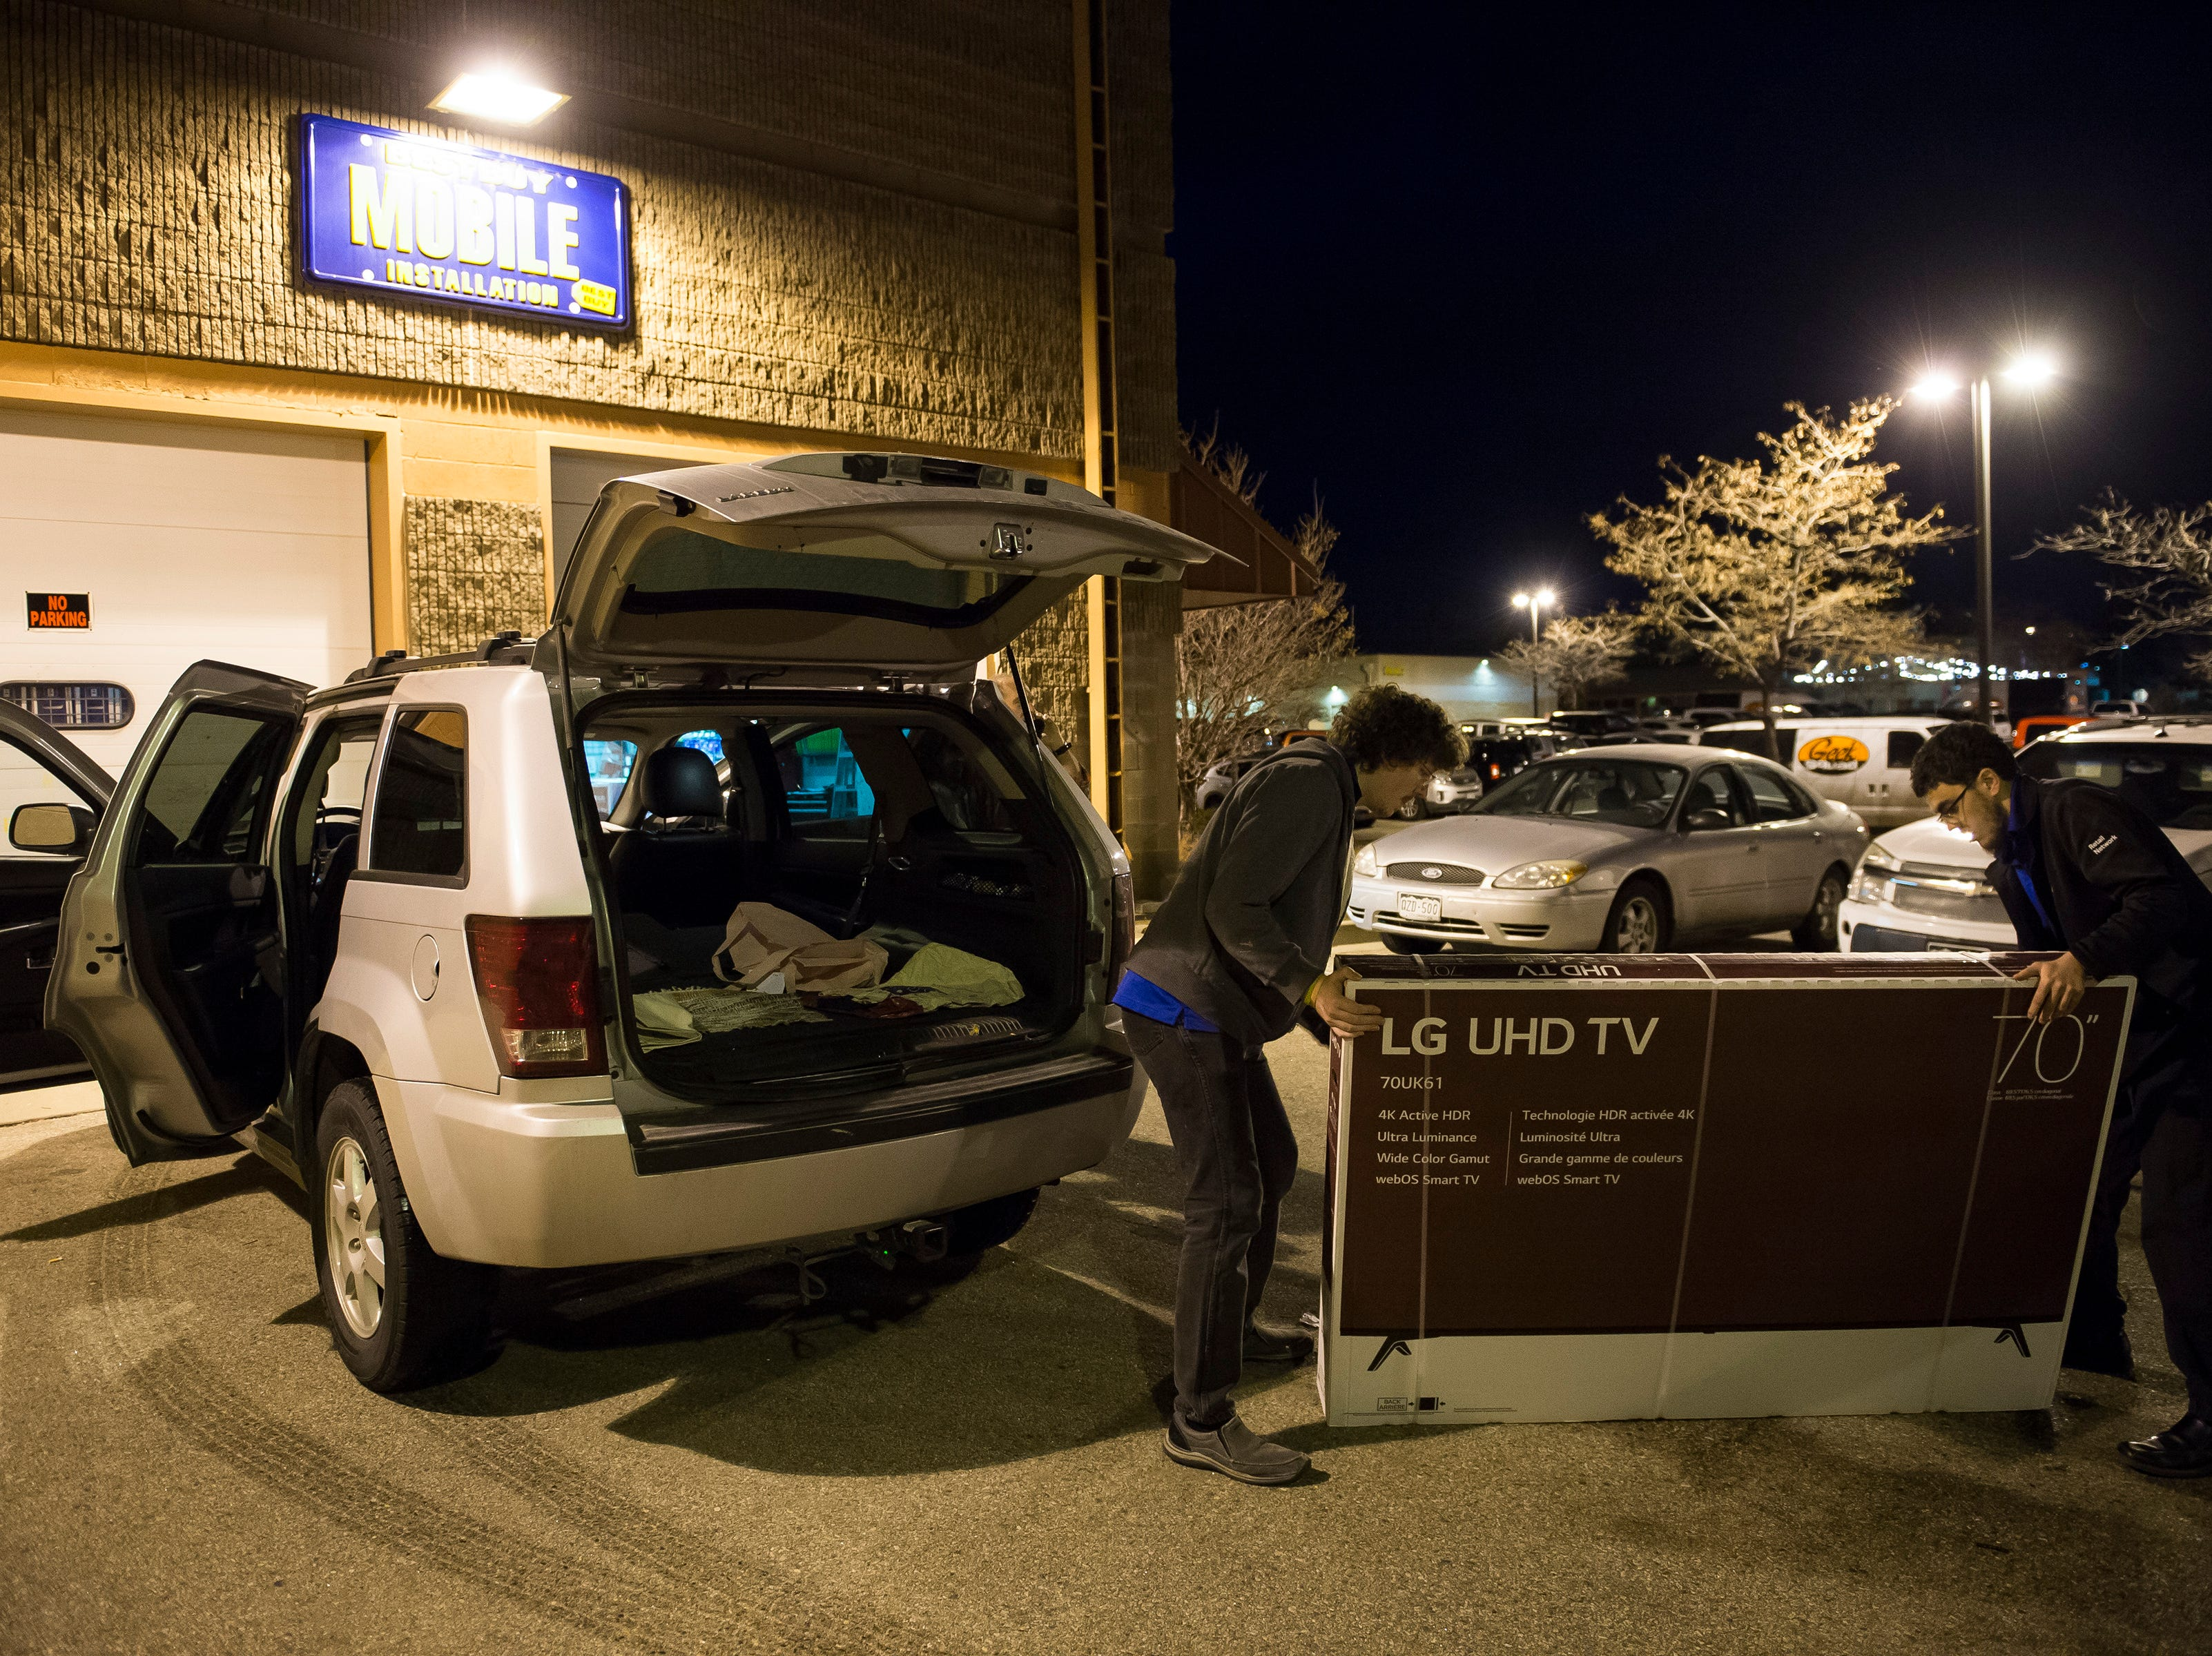 Best Buy employees Jacob Gentrup, left, and Sam Field load up large televisions into customer vehicle on Thursday, Nov. 22, 2018, at Best Buy in Fort Collins, Colo.